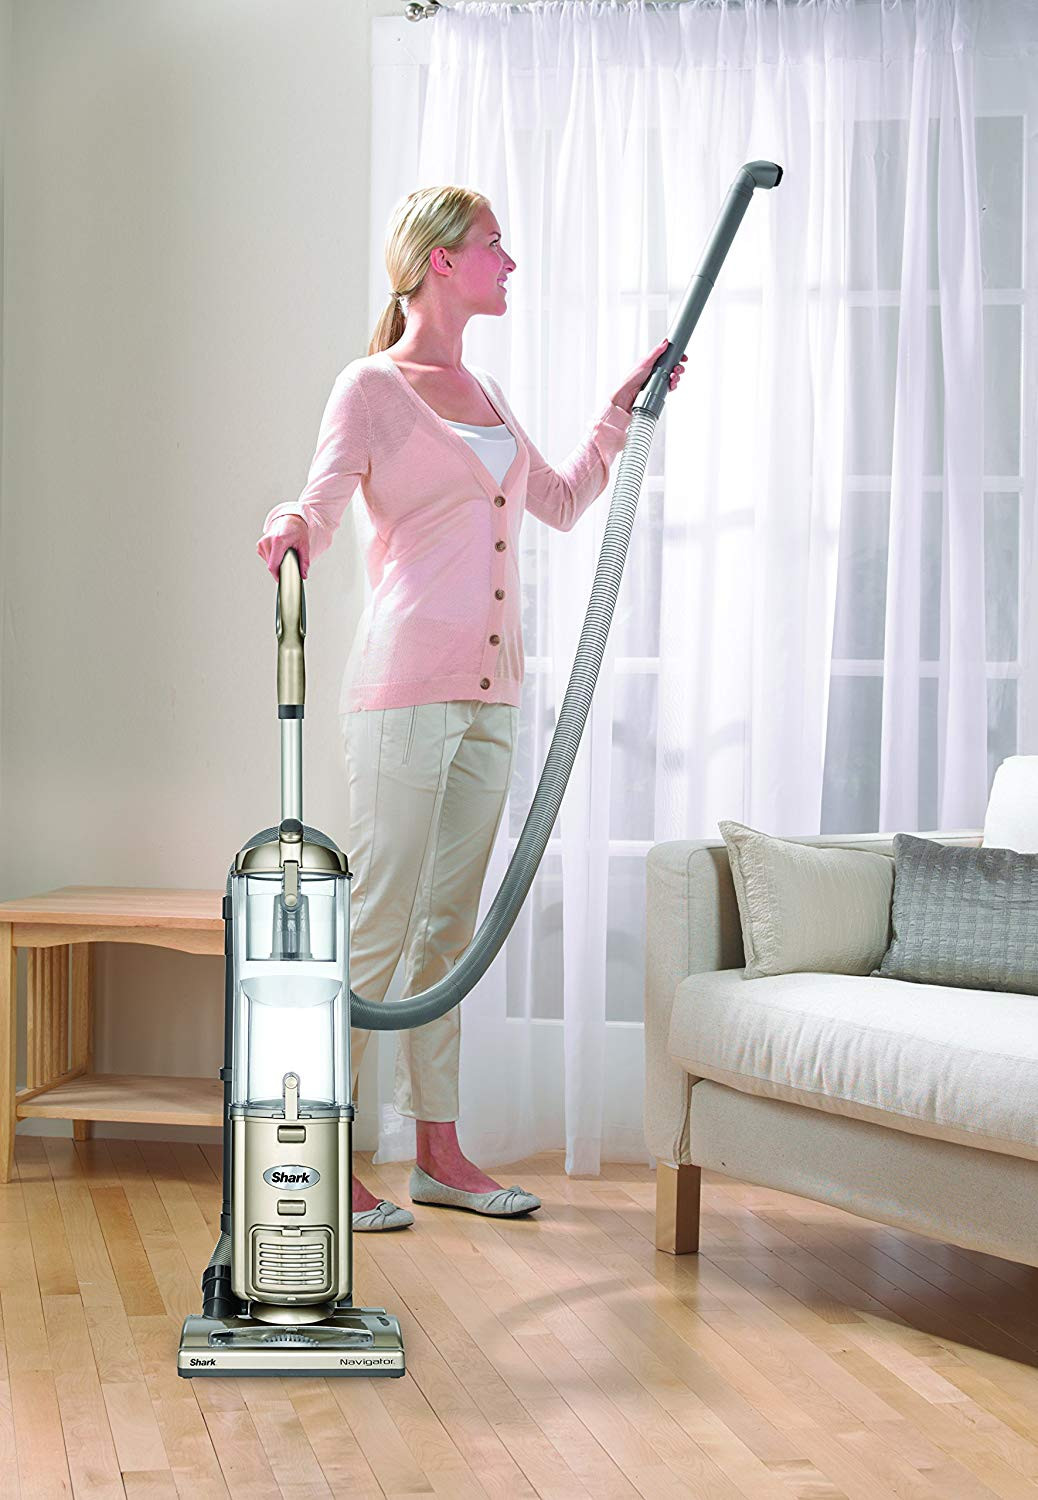 best vacuums for hardwood floors 2016 of amazon com shark navigator deluxe upright corded bagless vacuum for in amazon com shark navigator deluxe upright corded bagless vacuum for carpet and hard floor with anti allergy seal nv42 champagne home kitchen